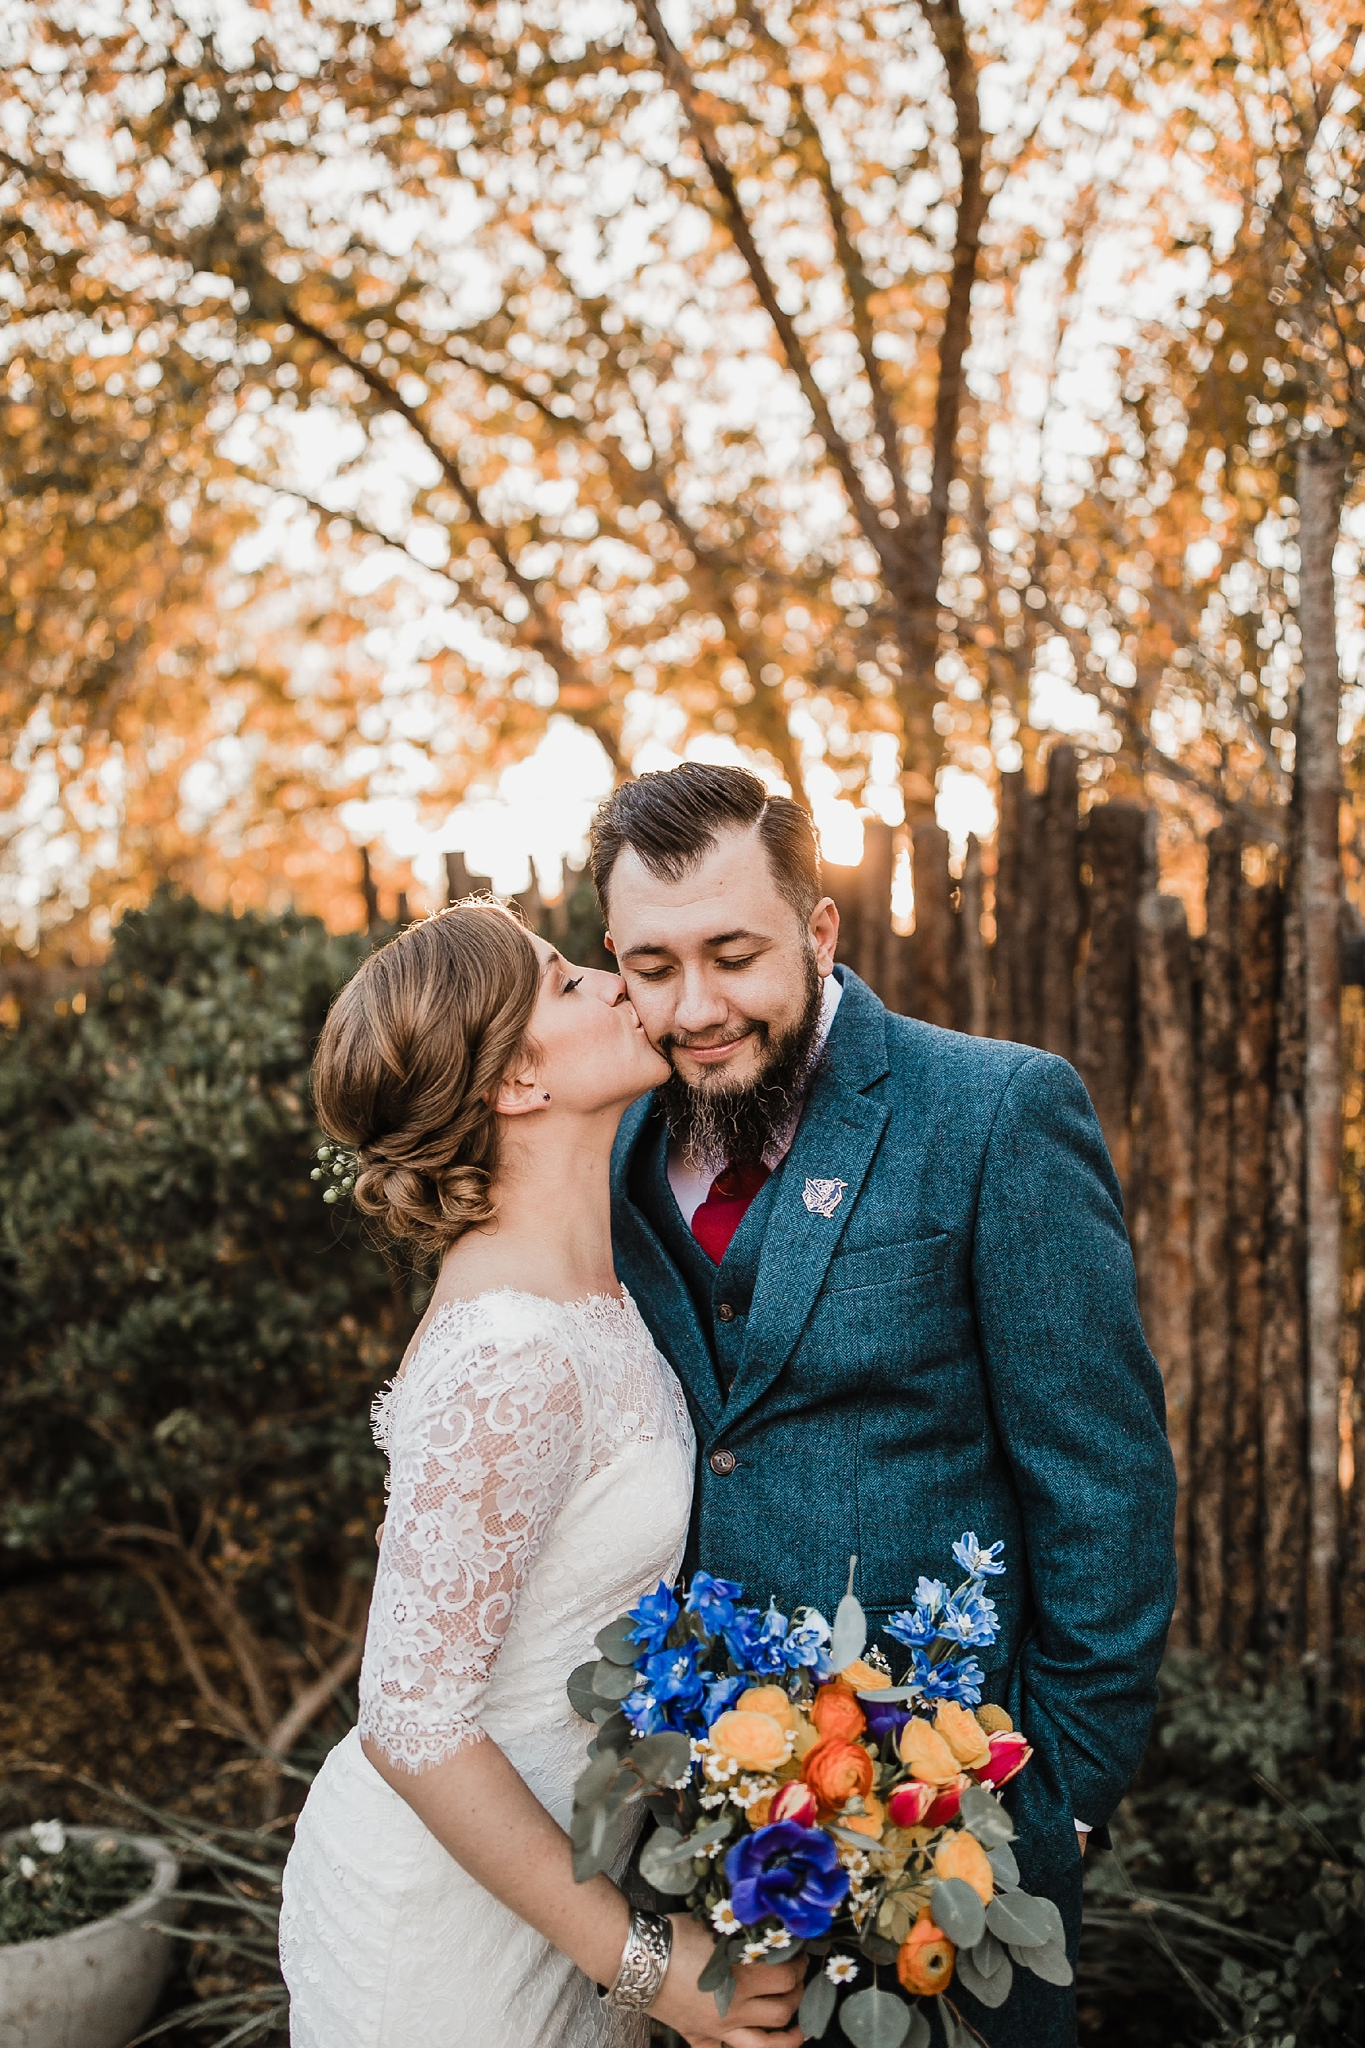 Alicia+lucia+photography+-+albuquerque+wedding+photographer+-+santa+fe+wedding+photography+-+new+mexico+wedding+photographer+-+new+mexico+wedding+-+wedding+vows+-+writing+your+own+vows+-+wedding+inspo_0015.jpg